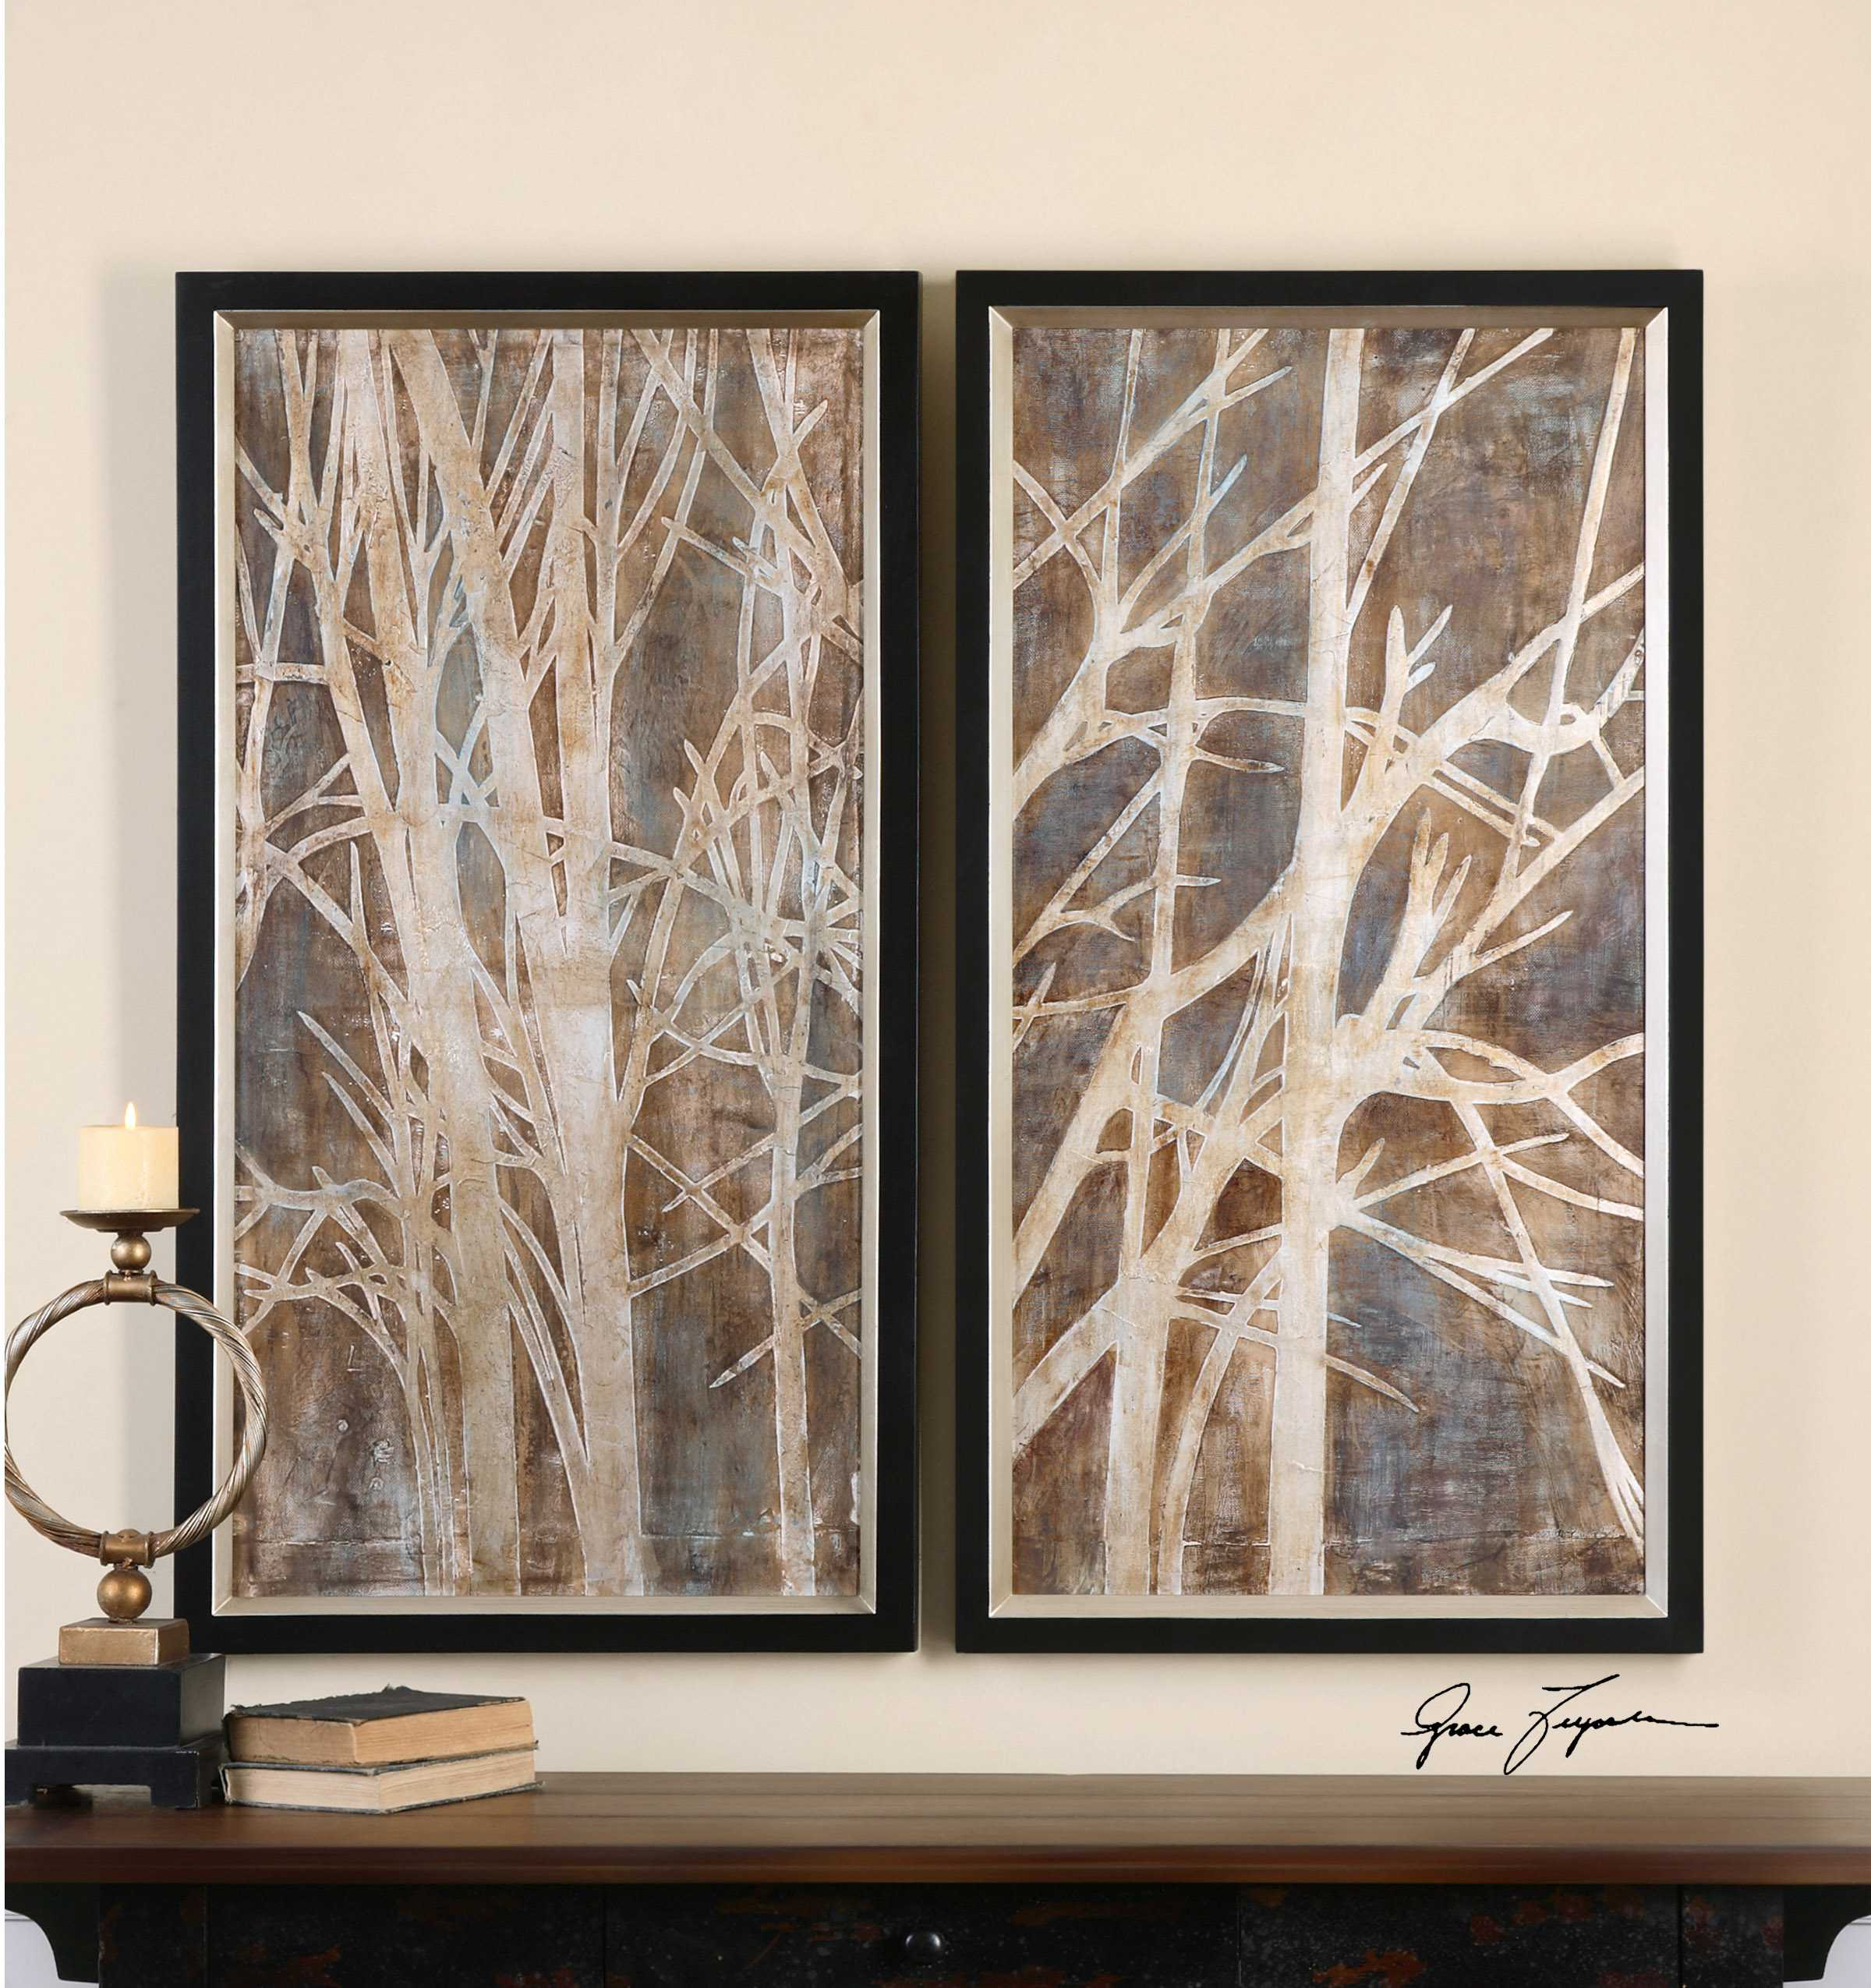 Uttermost Twigs Hand Painted Wall Art (2 Piece Set)